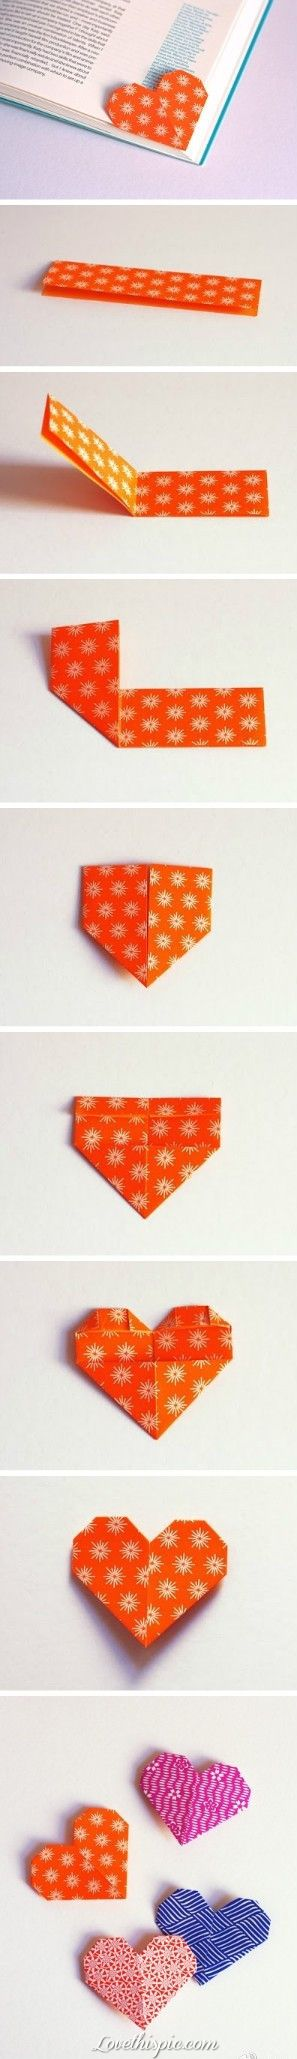 DIY Heart Bookmarks diy crafts home made easy crafts craft idea crafts ideas diy…